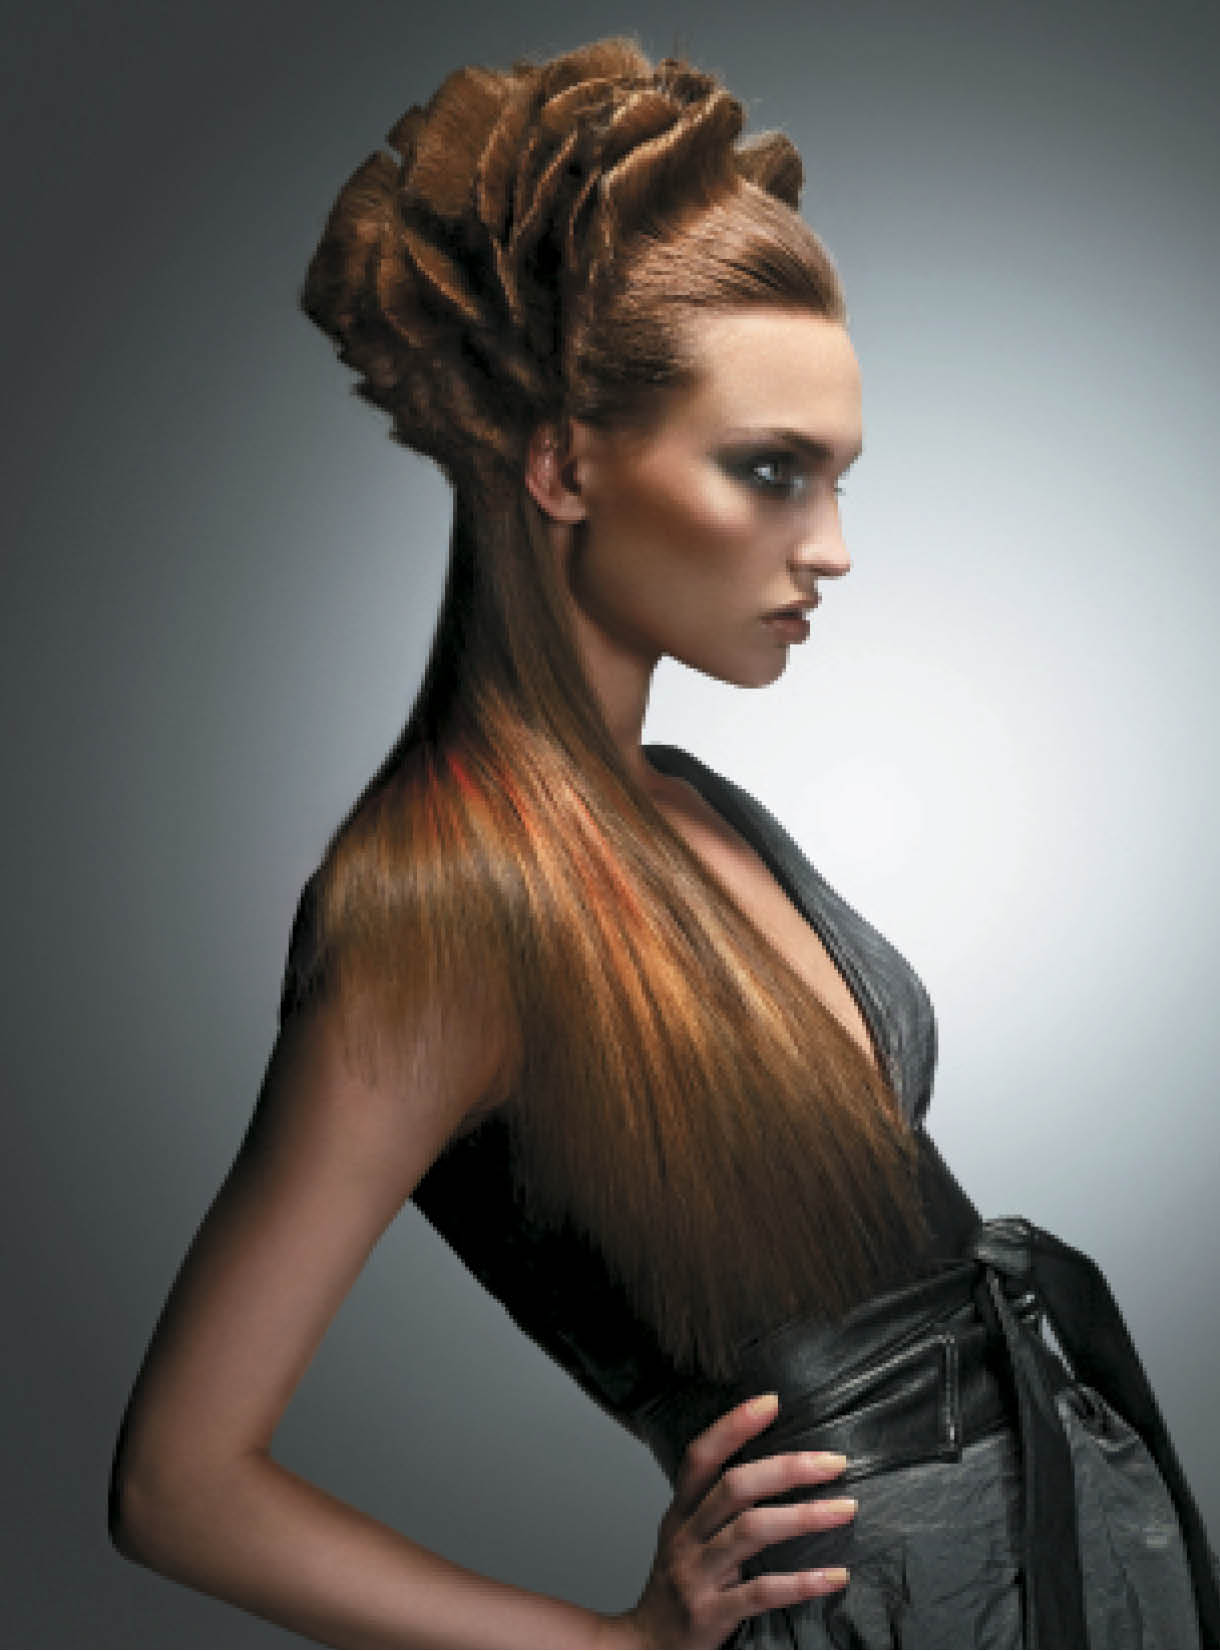 For color, Seung-Ki Baek highlighted the hair a red-blonde for an eye-catching look. To style, he backcombed the hair for volume and hold, then misted hairspray. Next, he folded the hair in and out with a flat-iron to create an origami effect, relying on L'Oréal Professionnel Tecni.Art Air Fix and Crystal Gloss to give hold and shine.